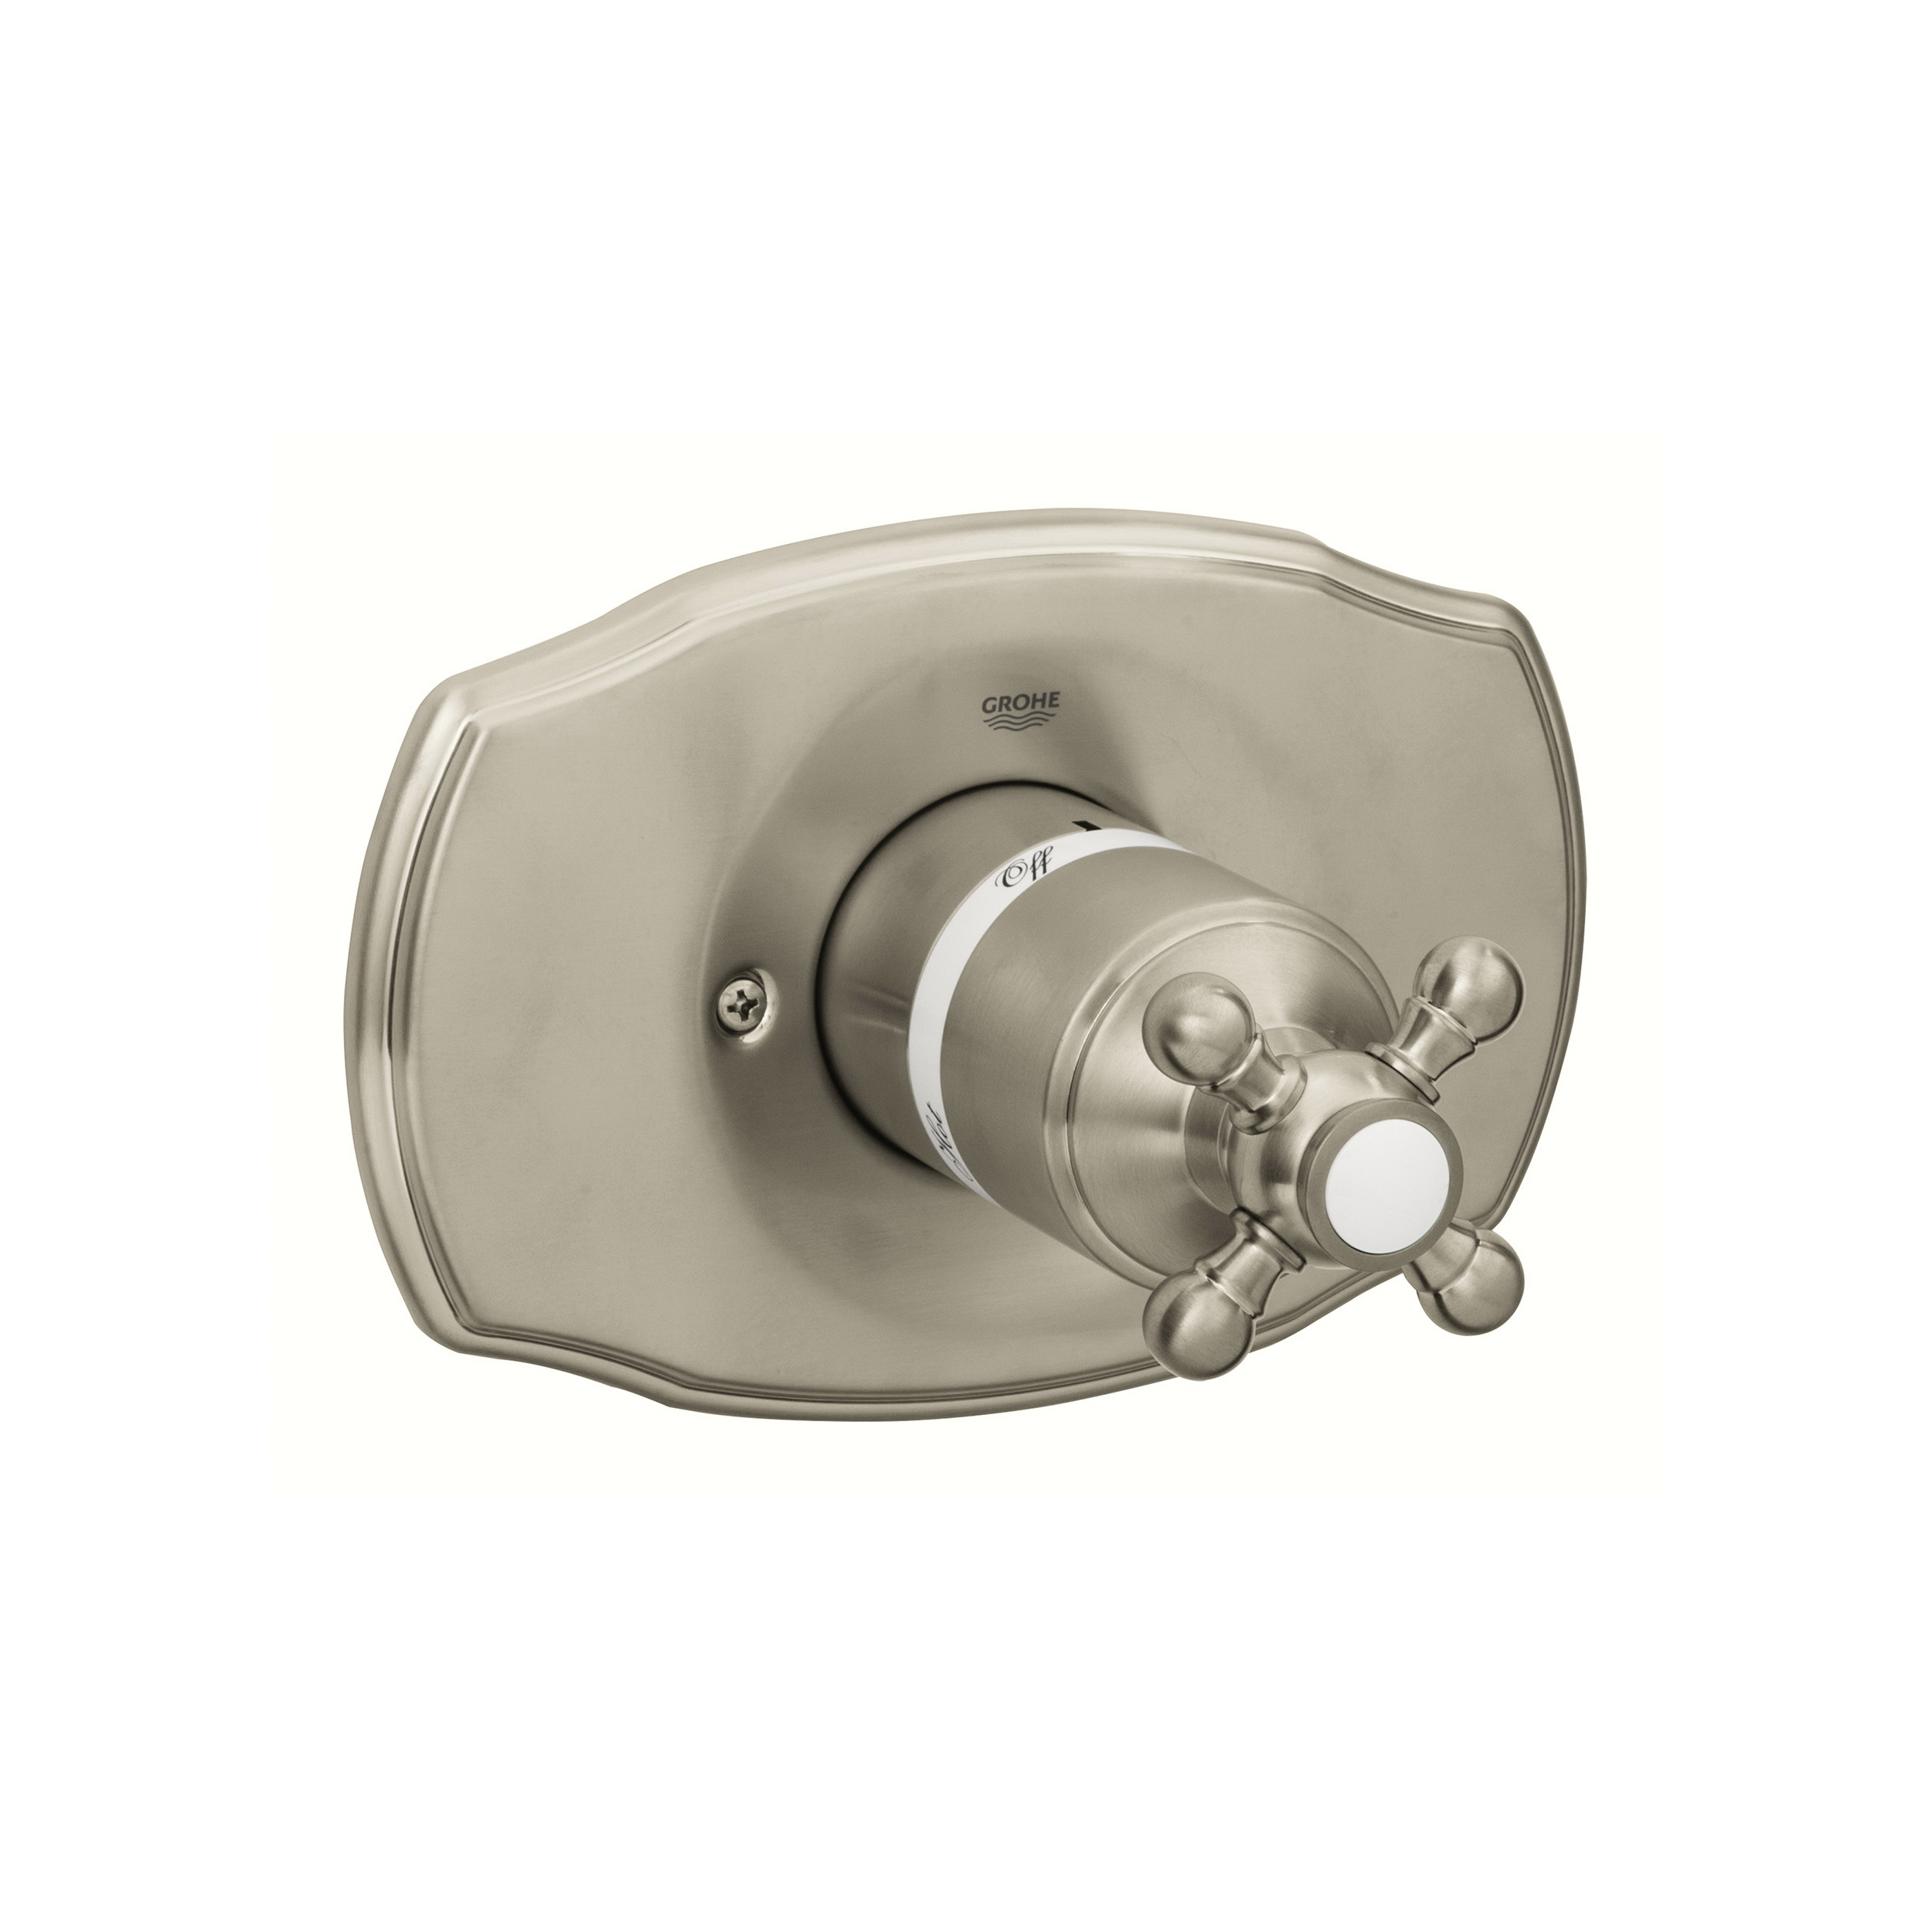 GROHE 19725EN0 Geneva™ Valve Trim Kit, Brushed Nickel